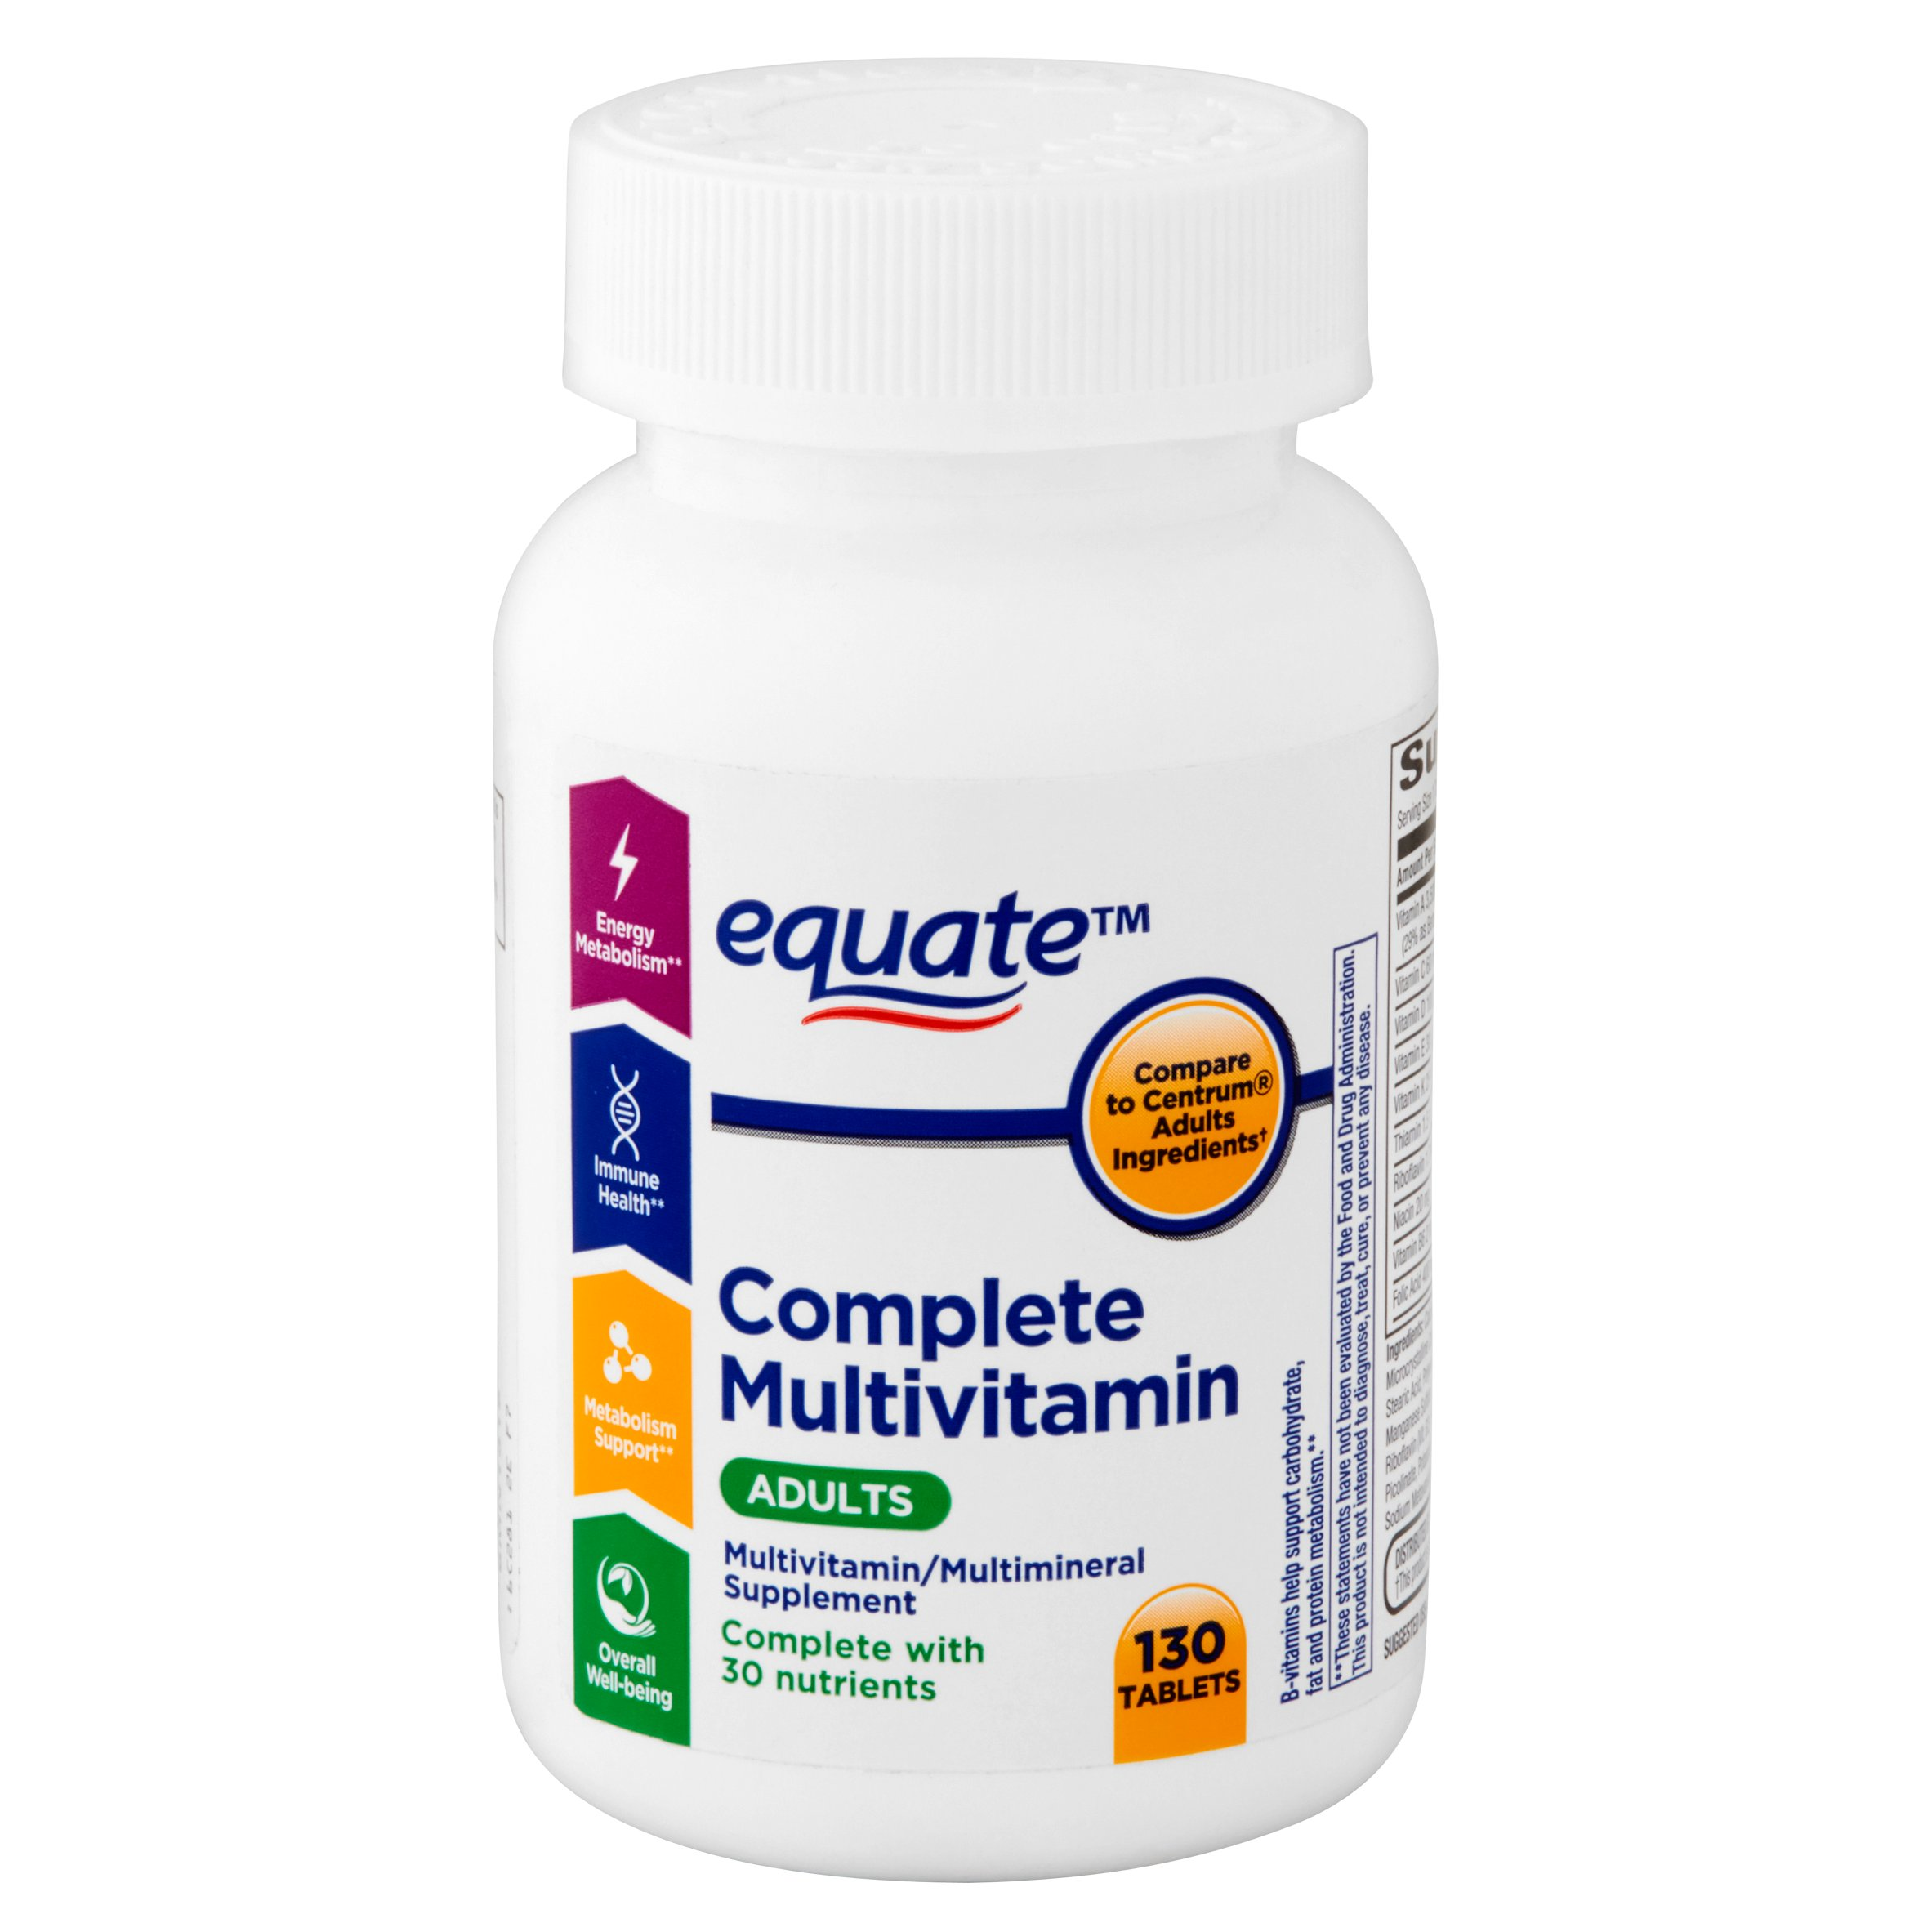 equate complete multivitamin tablets, adults,130 count - walmart